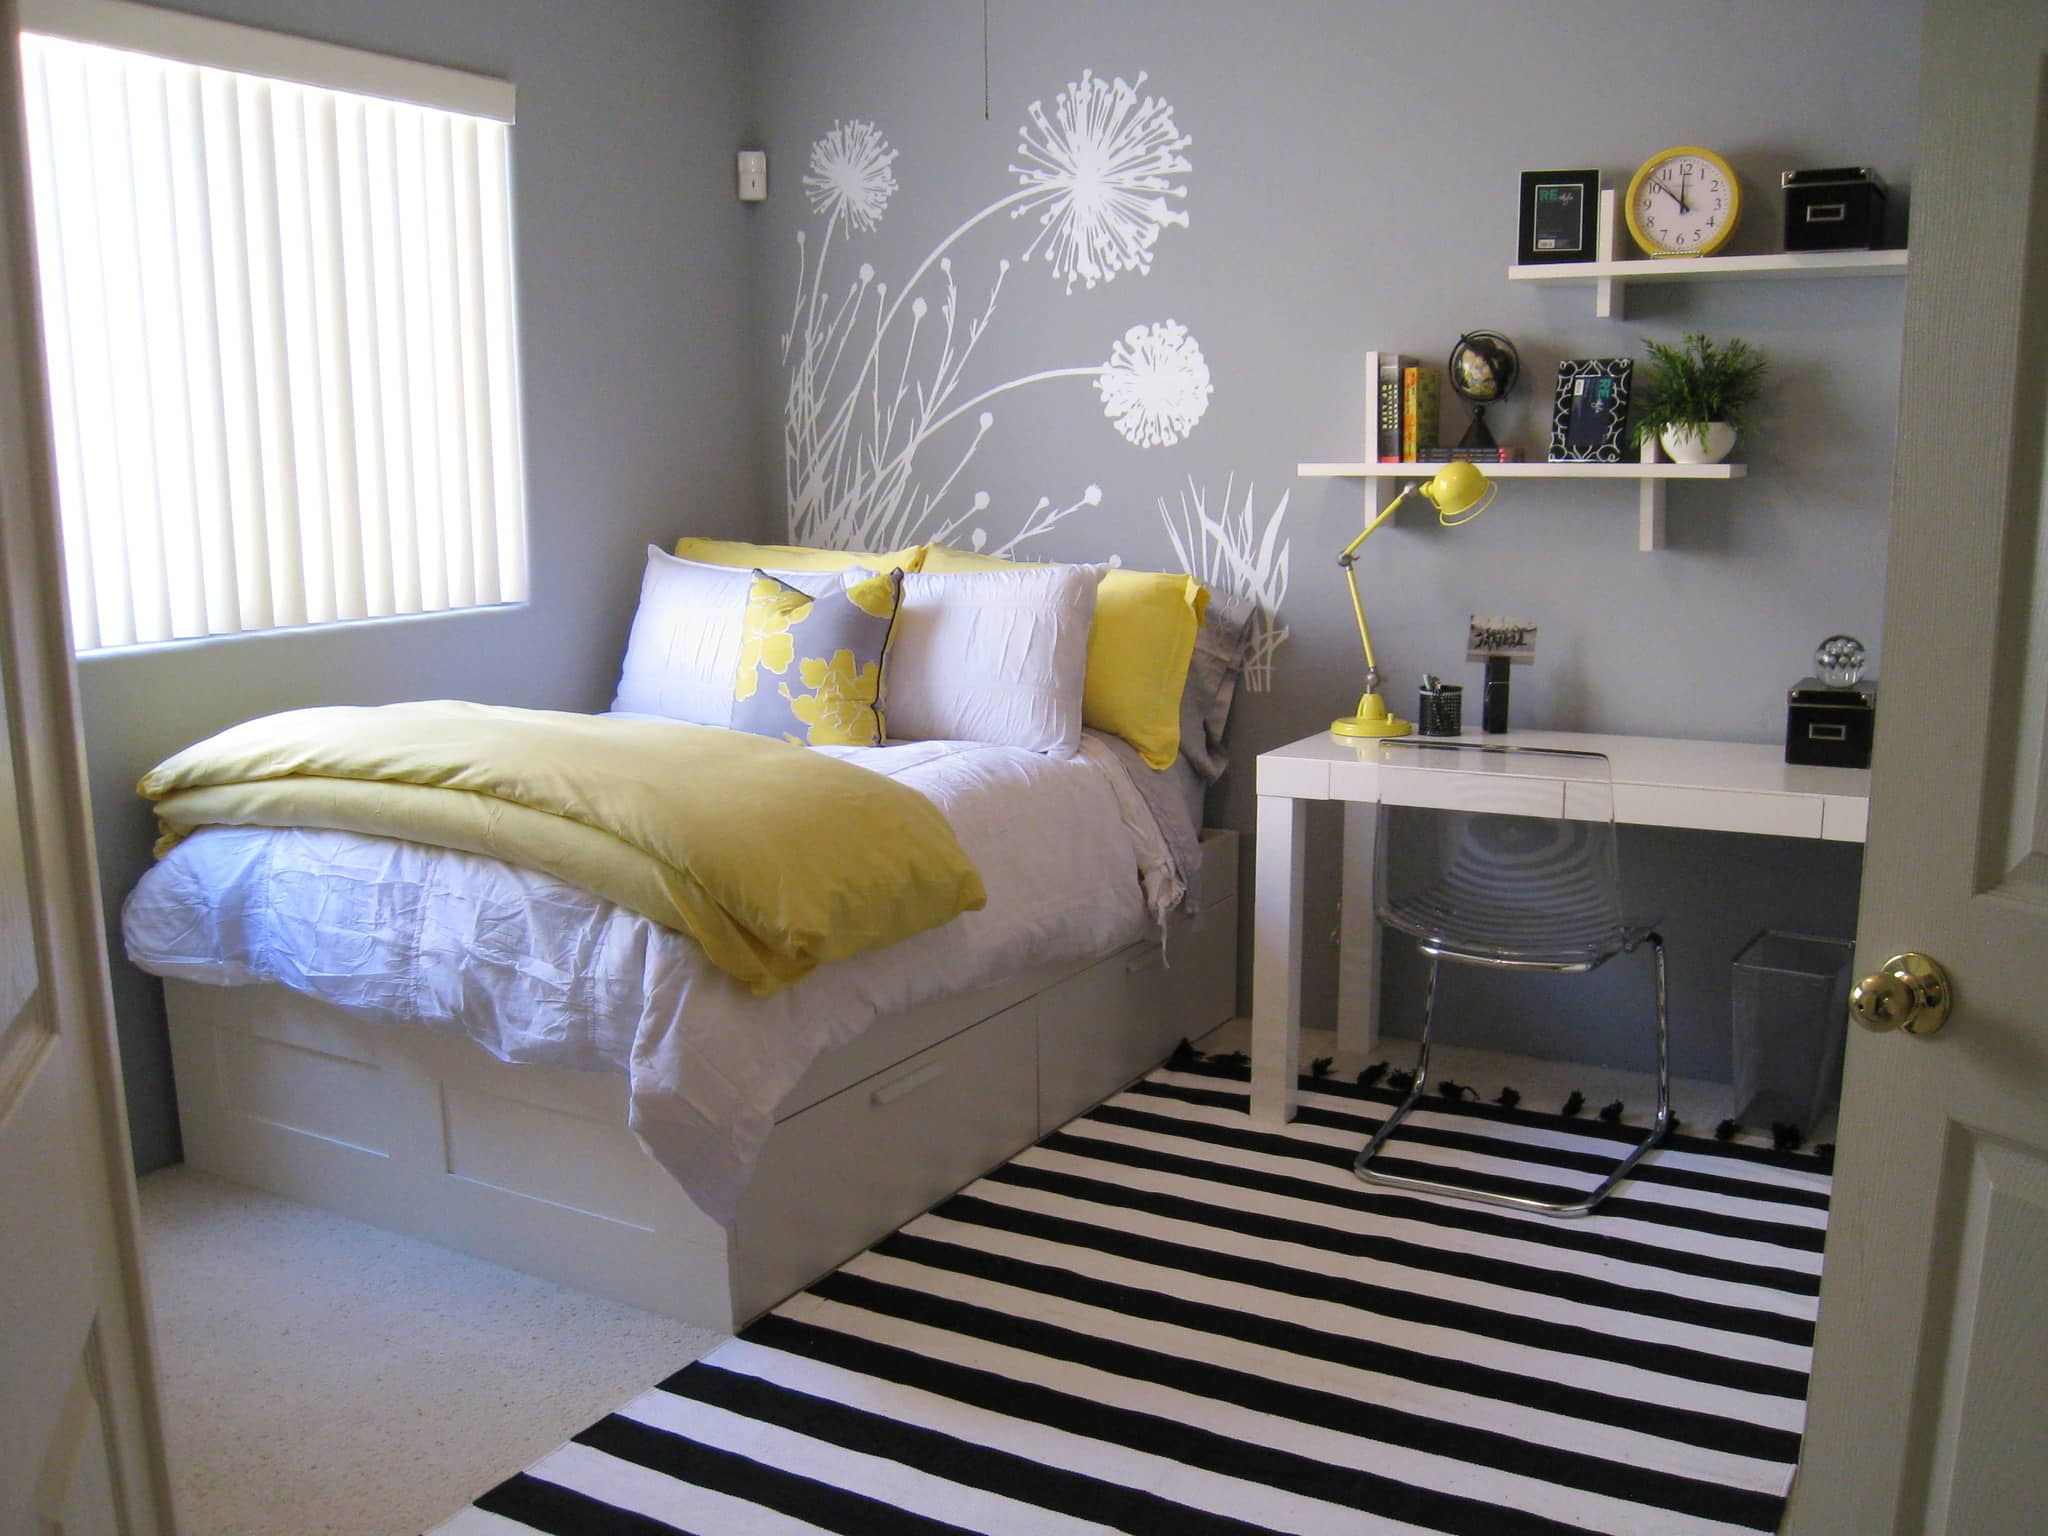 Big Girl Room Interior Design and Decoration Ideas. Zebra rug and grey colored walls with floral pattern